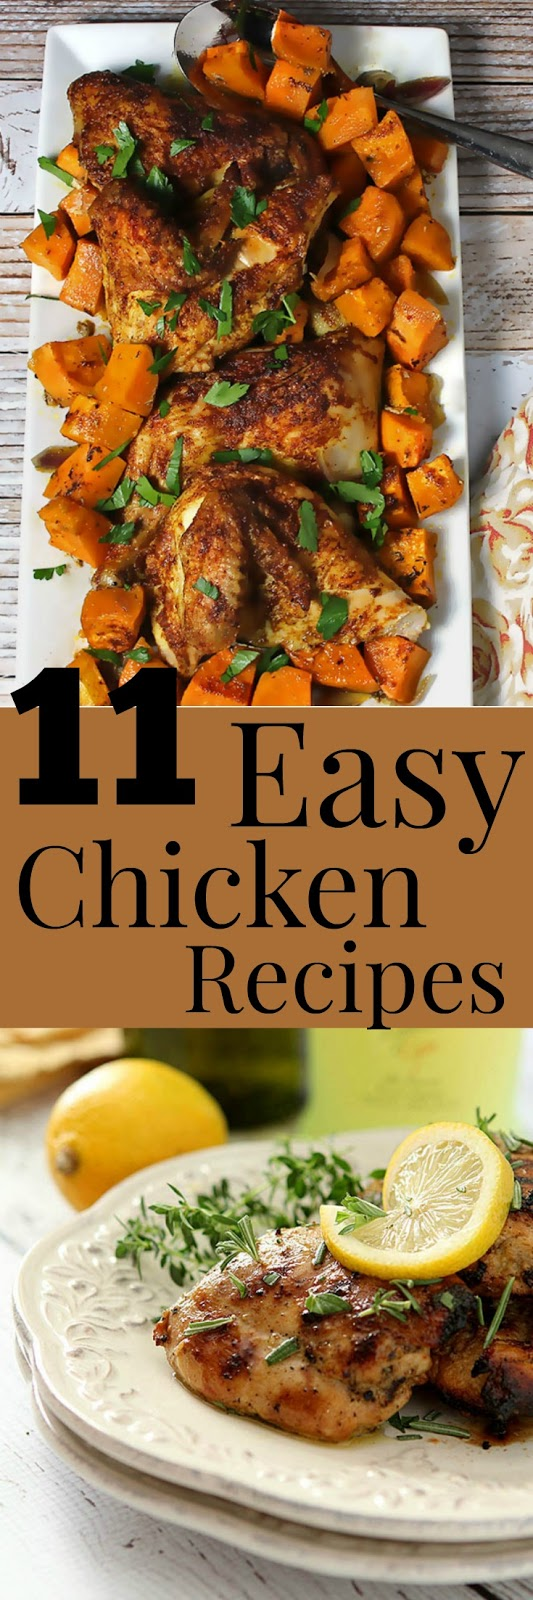 Easy Chicken Recipes for National Chicken Month | Renee's Kitchen Adventures -11 easy chicken recipes